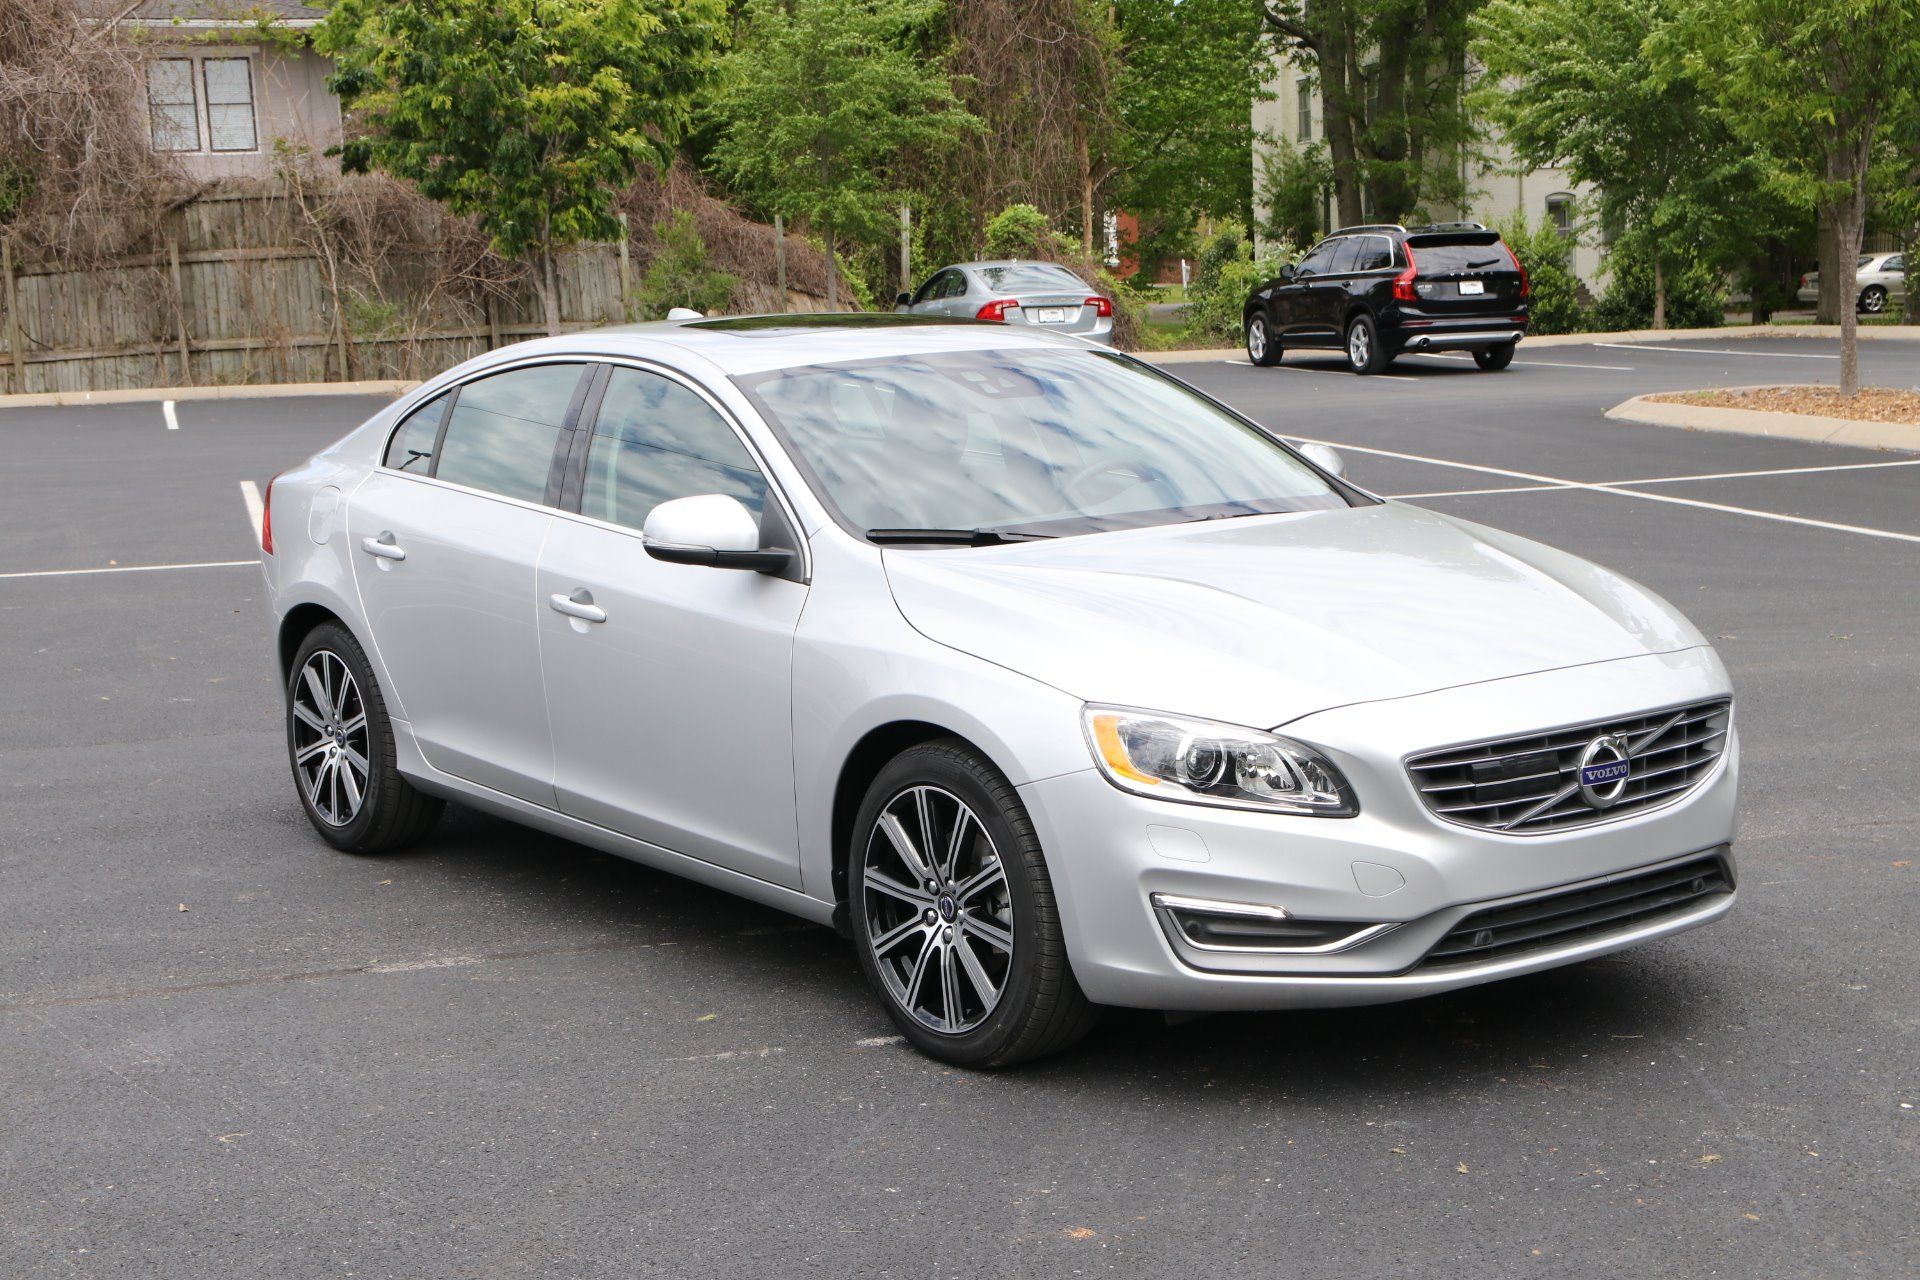 Used 2018 Volvo S60 T5 FWD INSCRIPTION PLATINUM W/NAV T5 Inscription Platinum for sale $23,950 at Auto Collection in Murfreesboro TN 37129 1